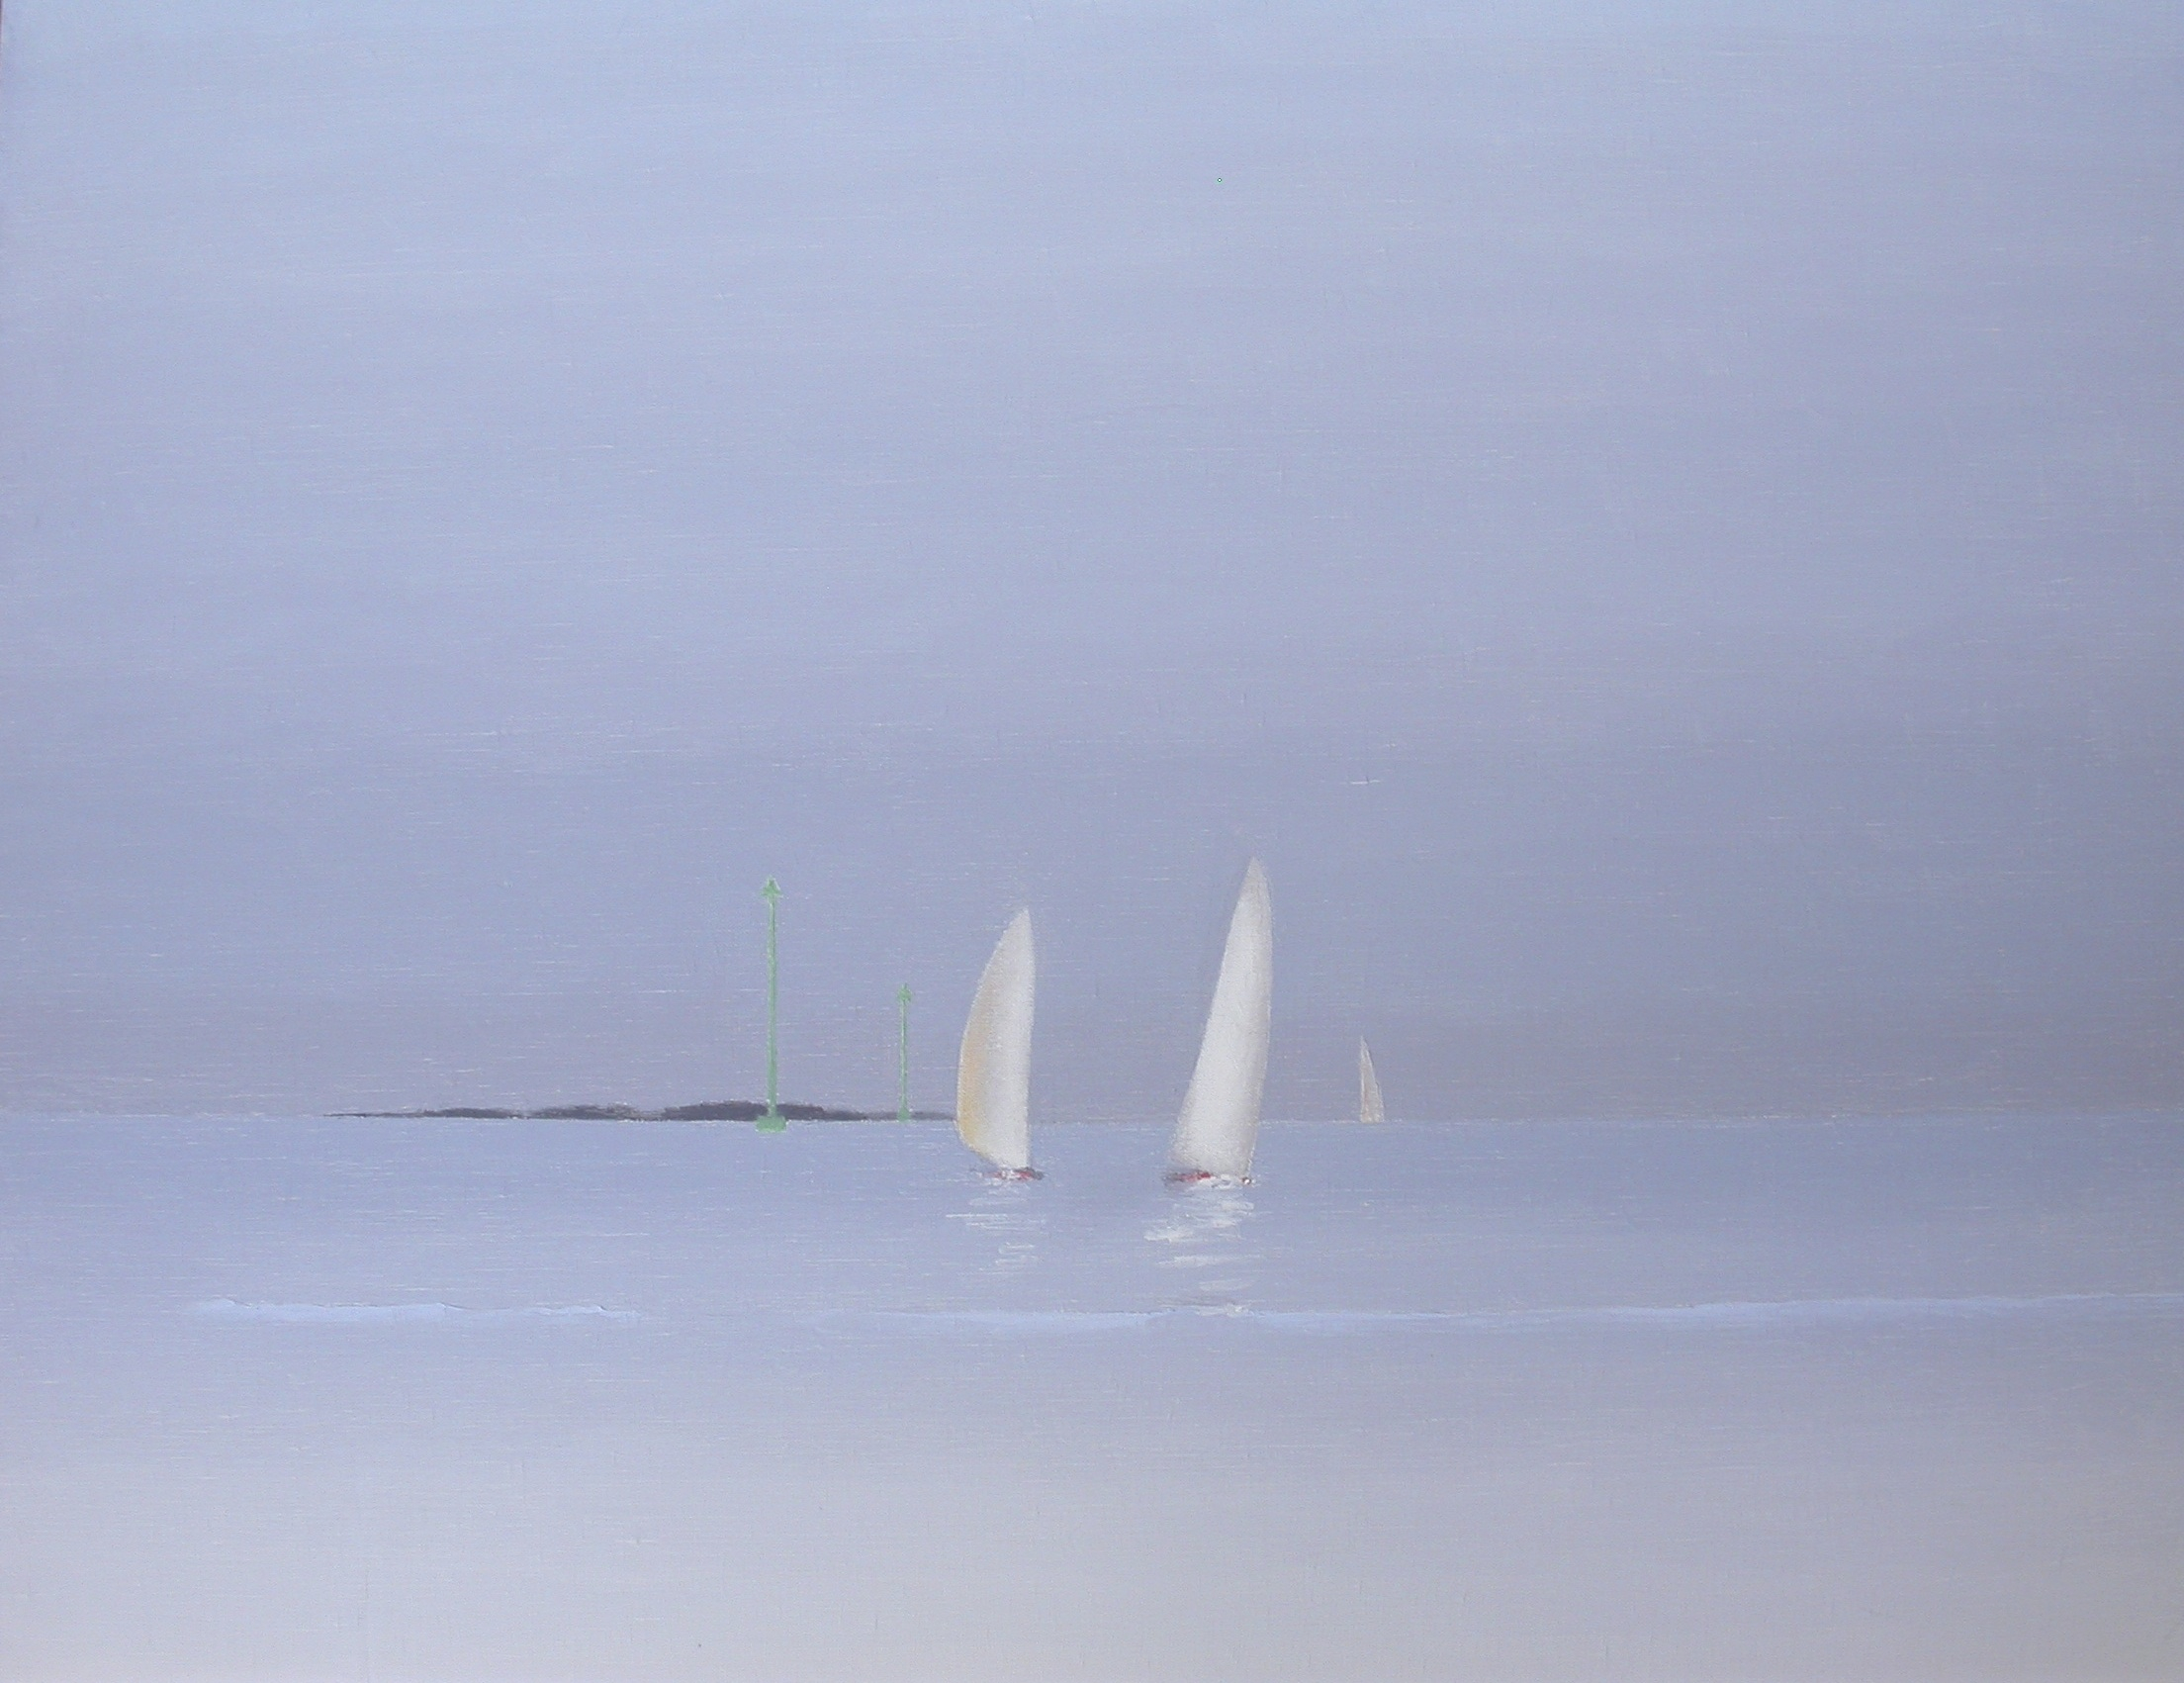 Sailing boats in the Gulf of Morbiha